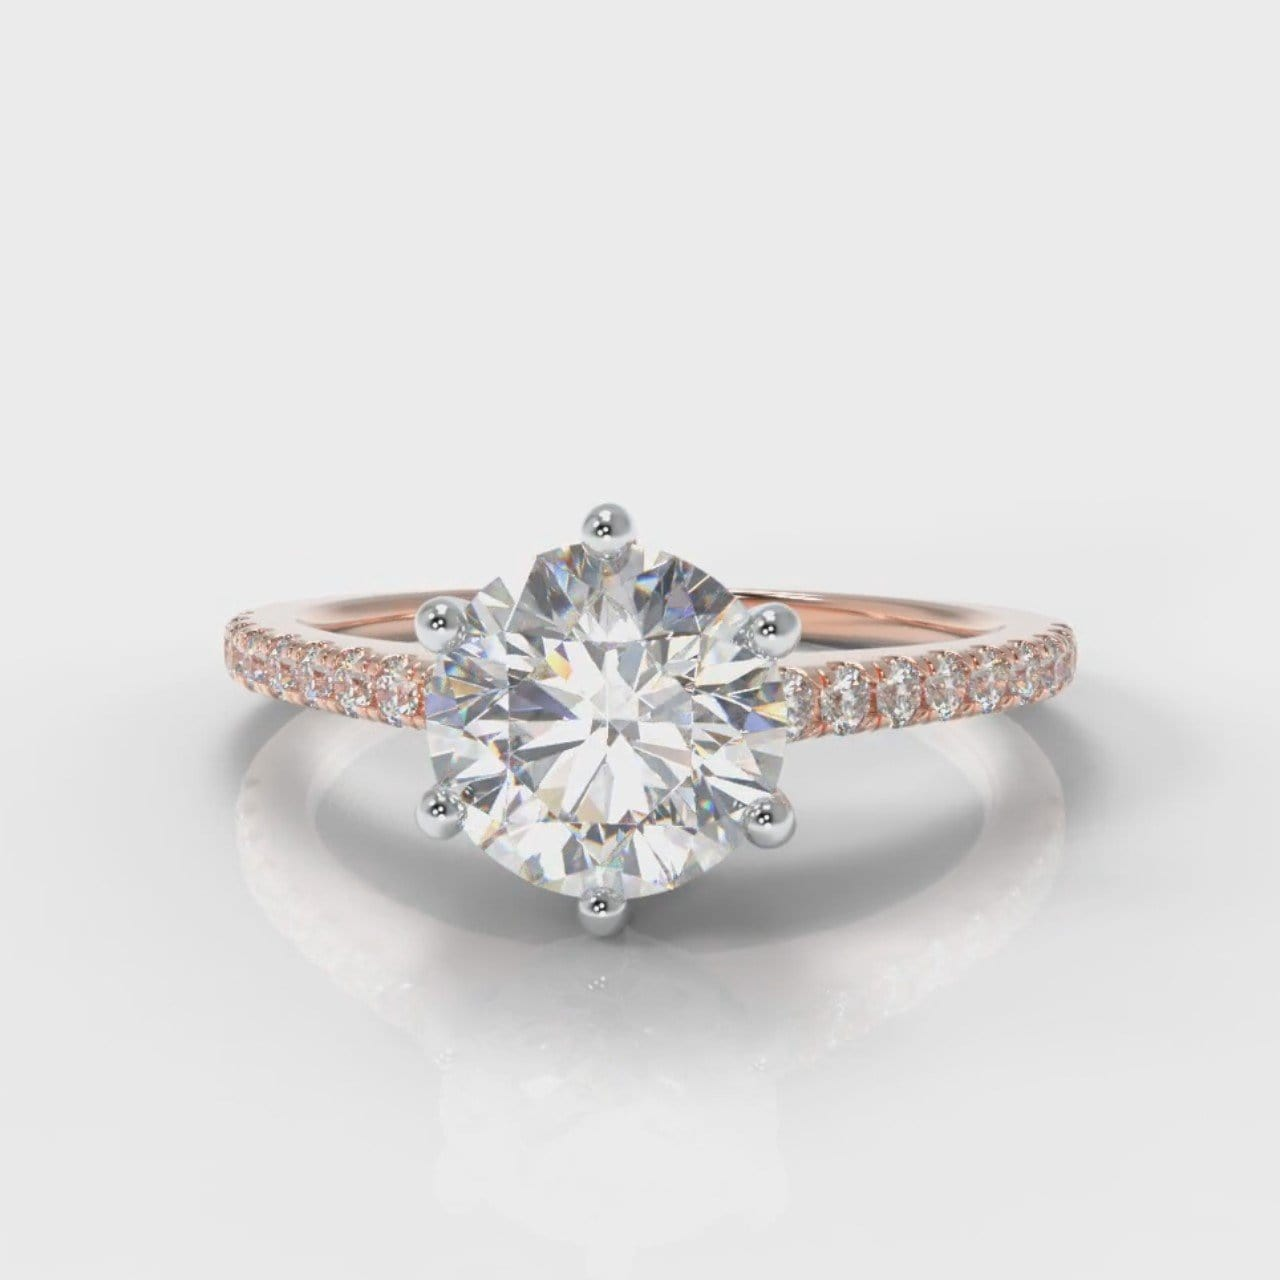 Star Petite Micropavé Round Brilliant Cut Diamond Engagement Ring - Rose Gold